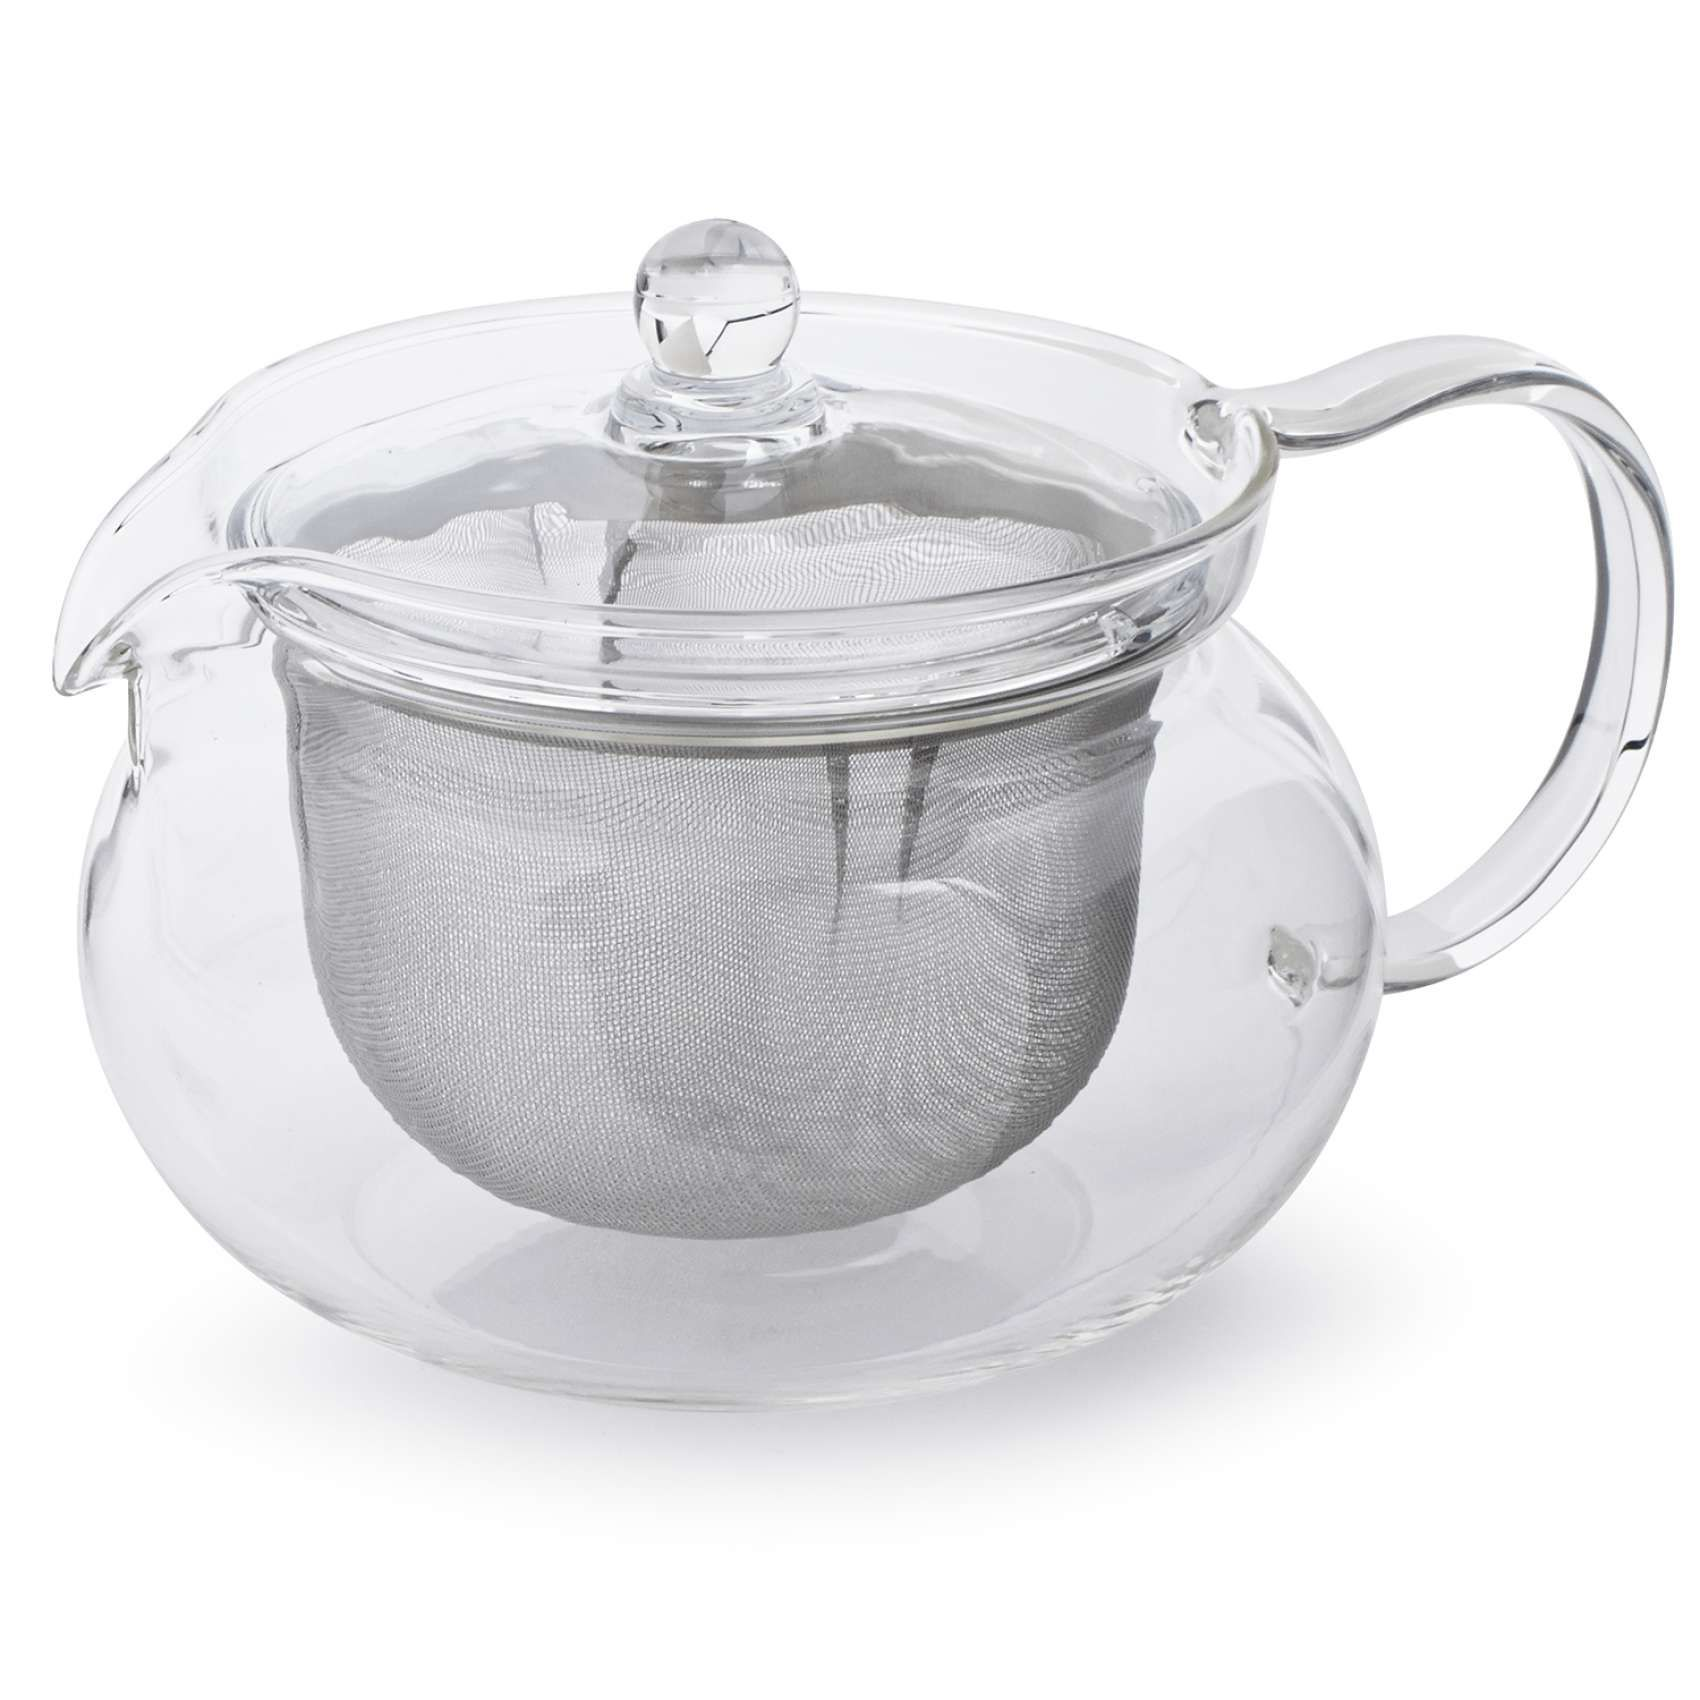 Hario Glass Teapot with Strainer Sur La Table Glass